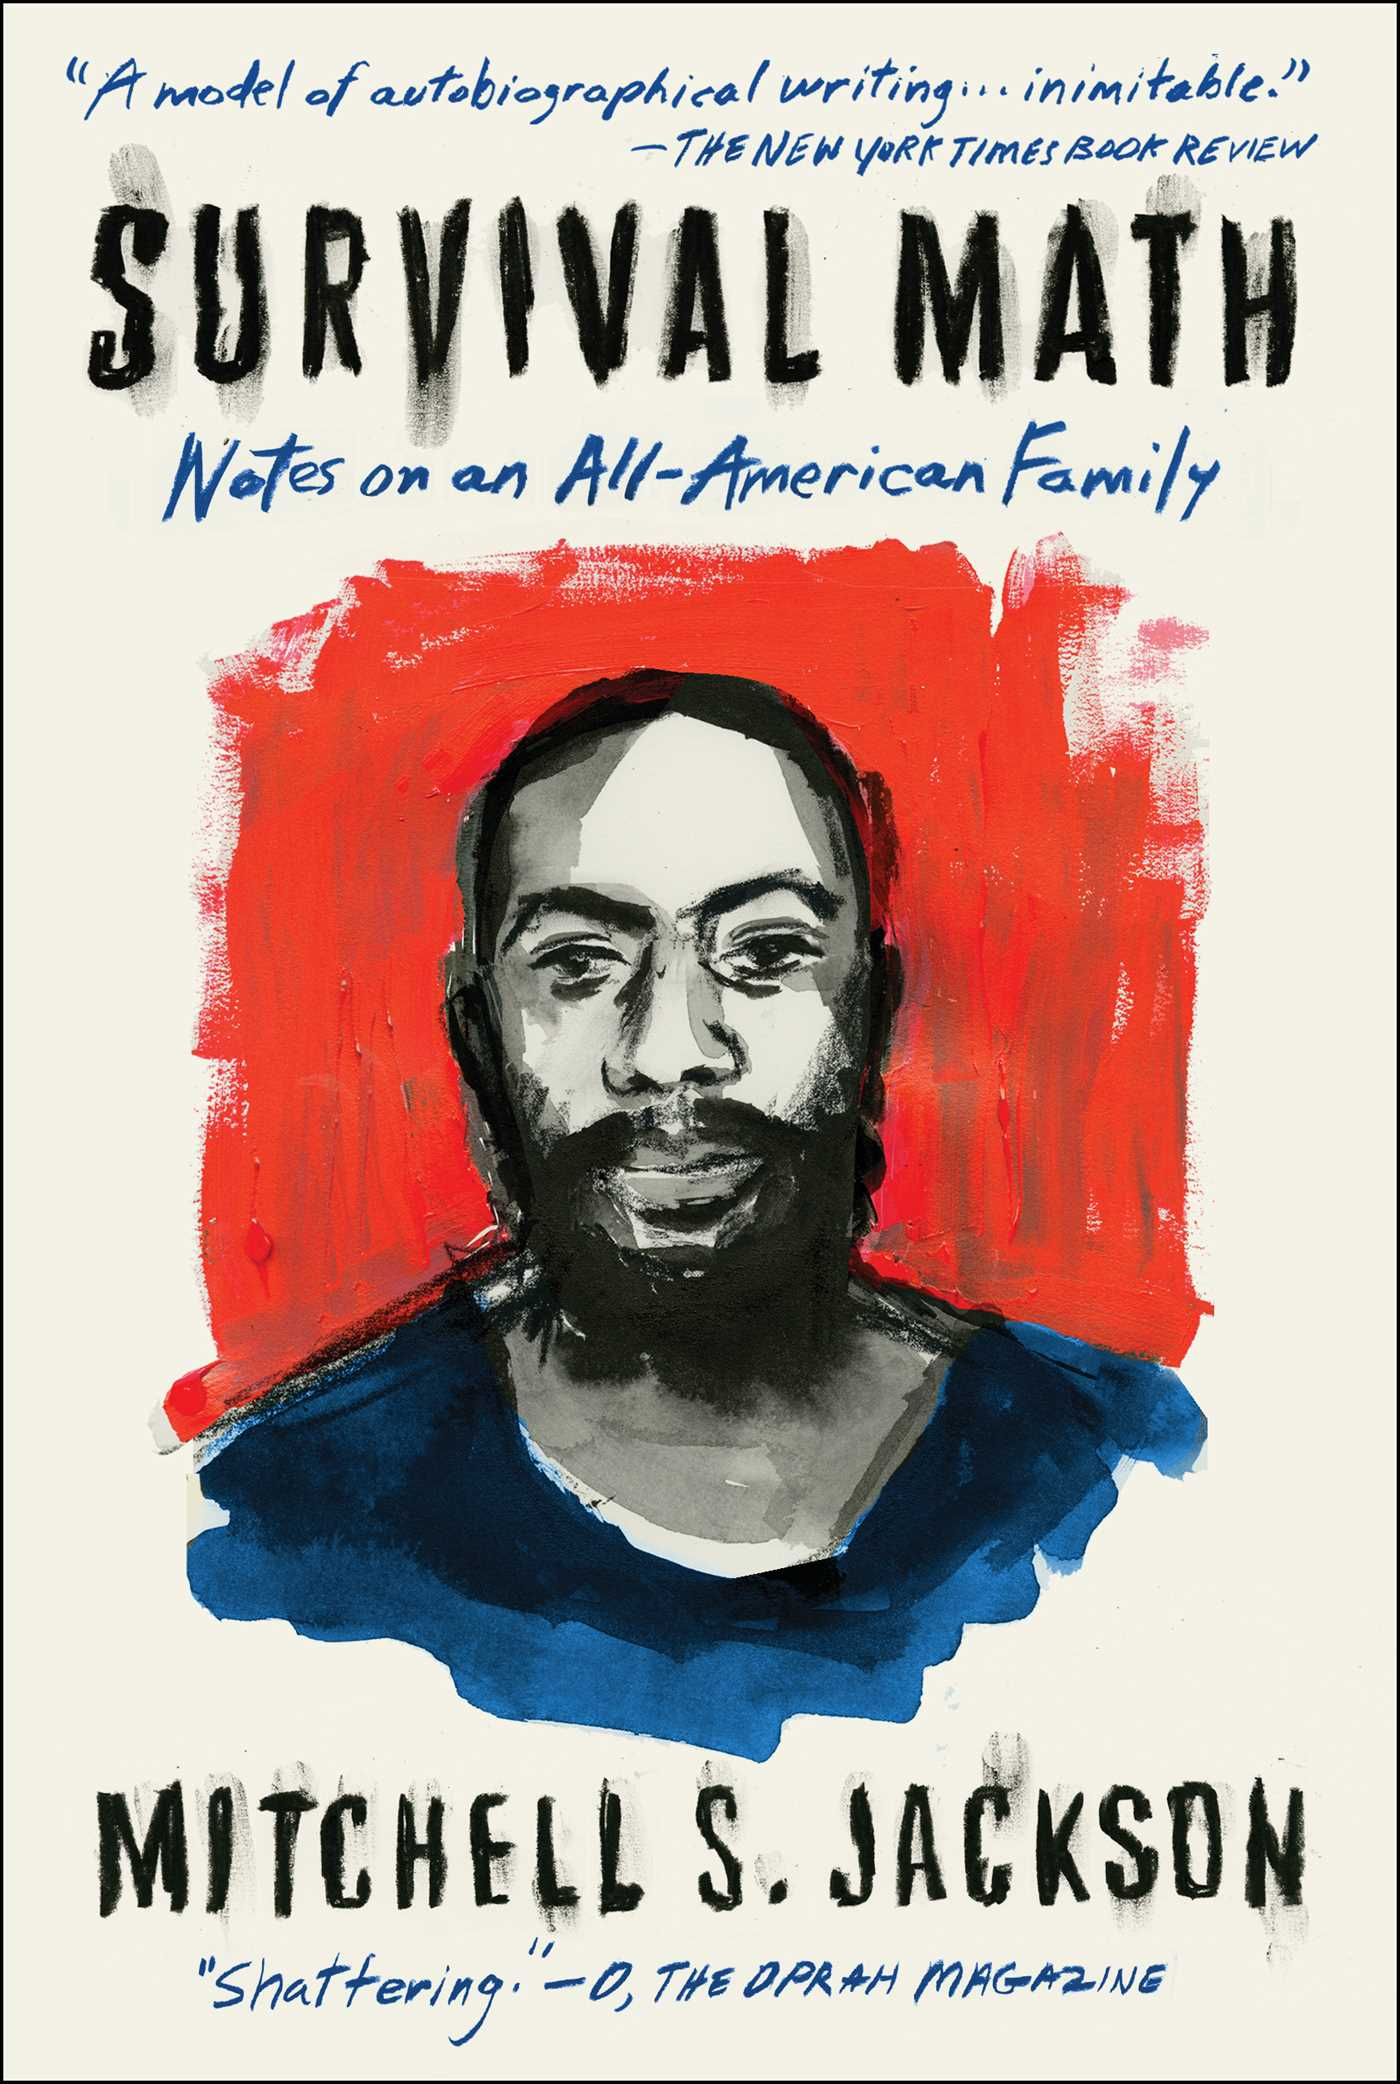 Survival Math by Mitchell S. Jackson